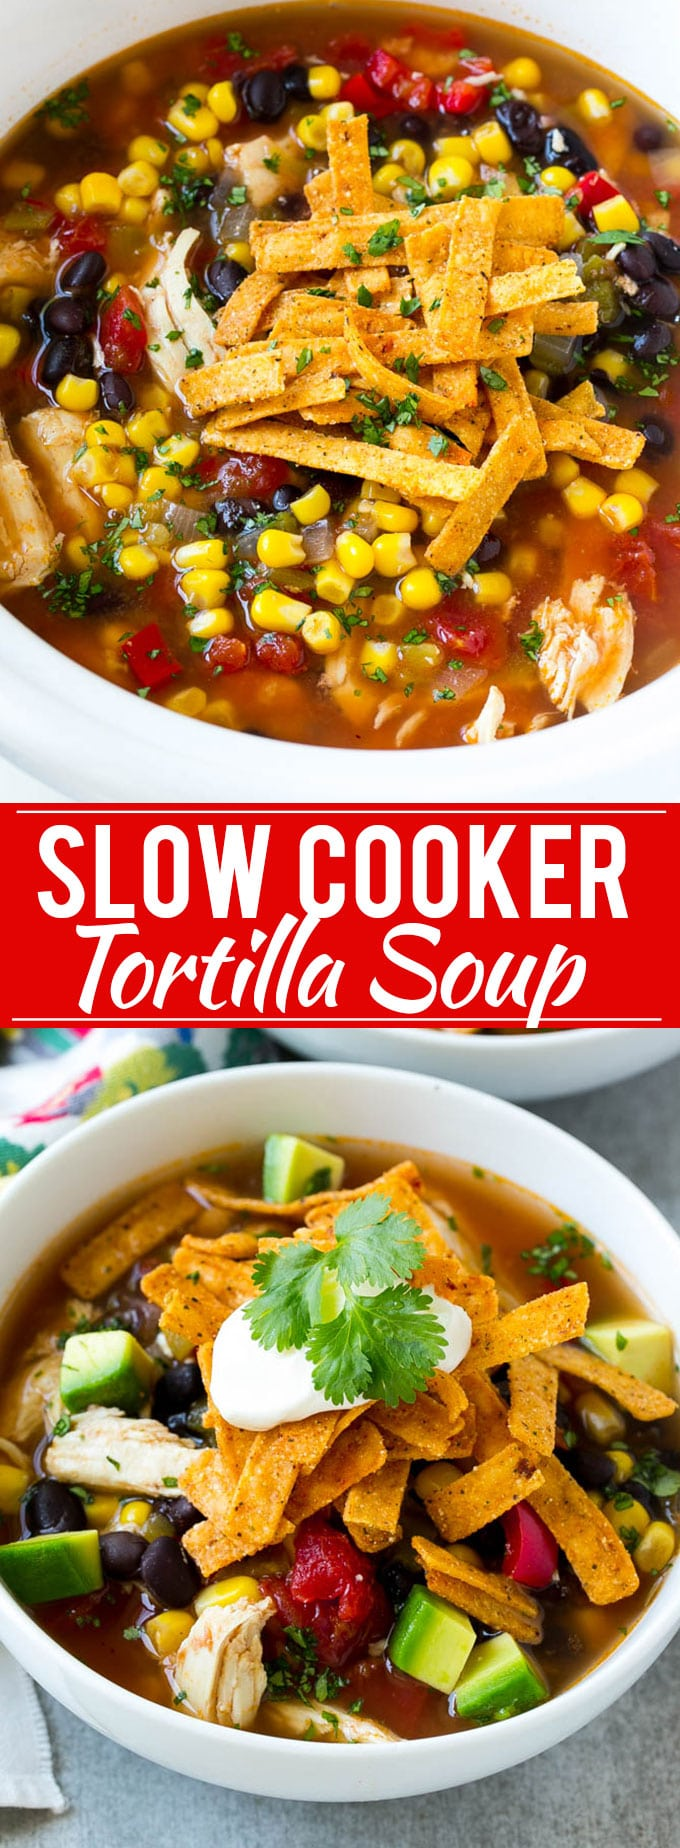 Slow Cooker Chicken Tortilla Soup Recipe | Chicken Soup Recipe | Slow Cooker Chicken Soup | Mexican Chicken Soup | Tortilla Soup Recipe